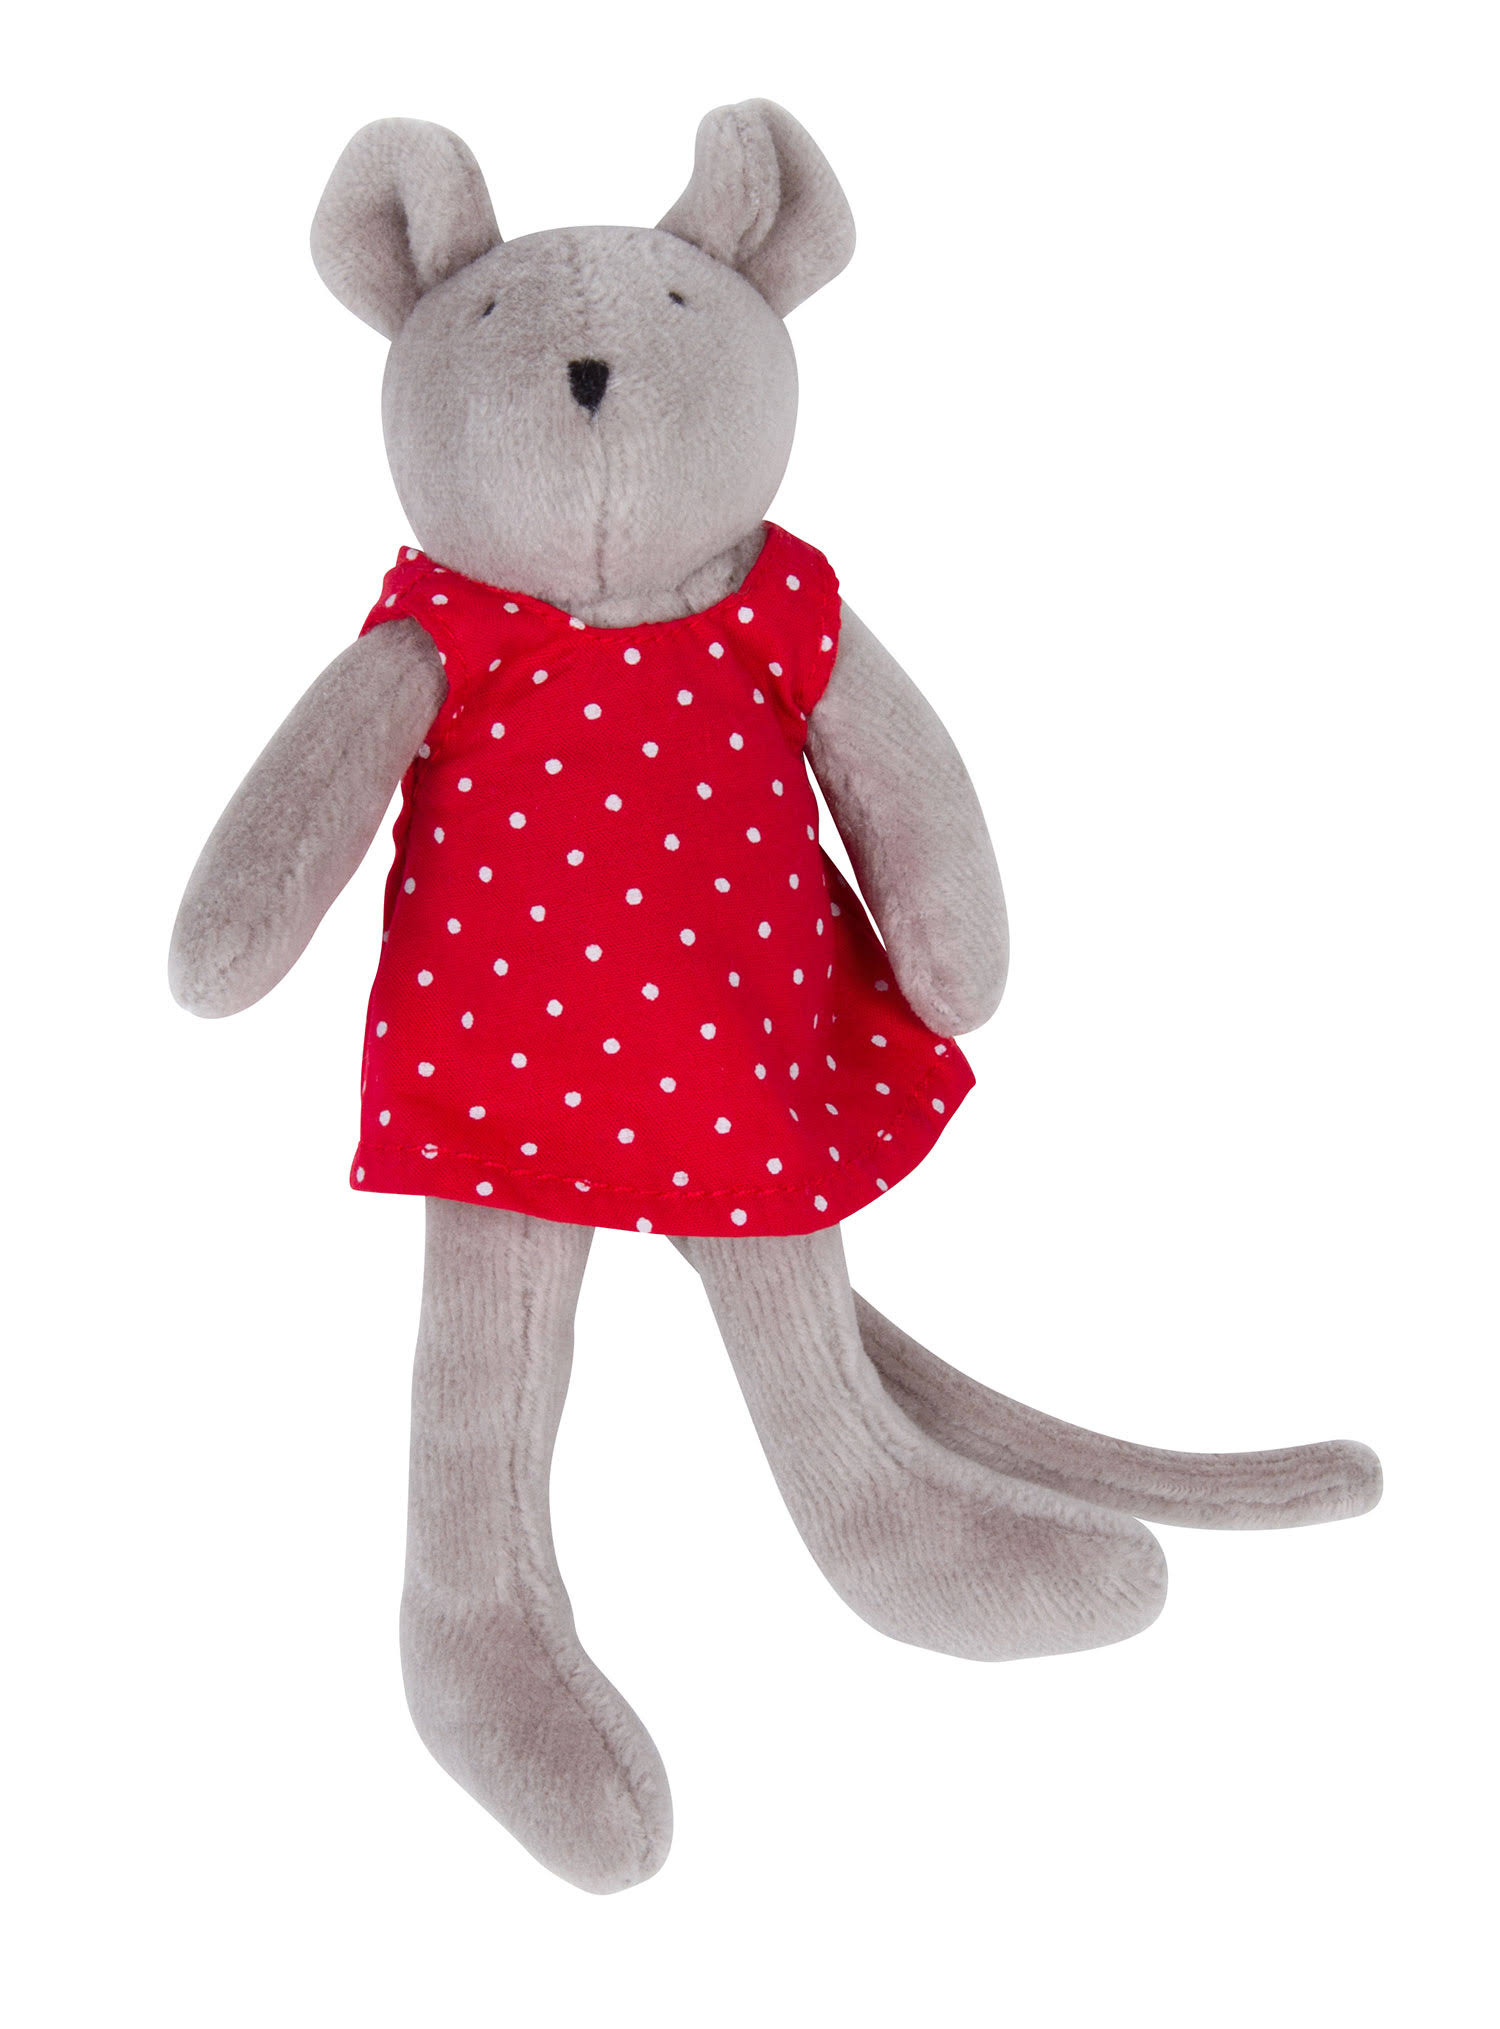 La Grande Mini Soft Toy - Nini the Mouse